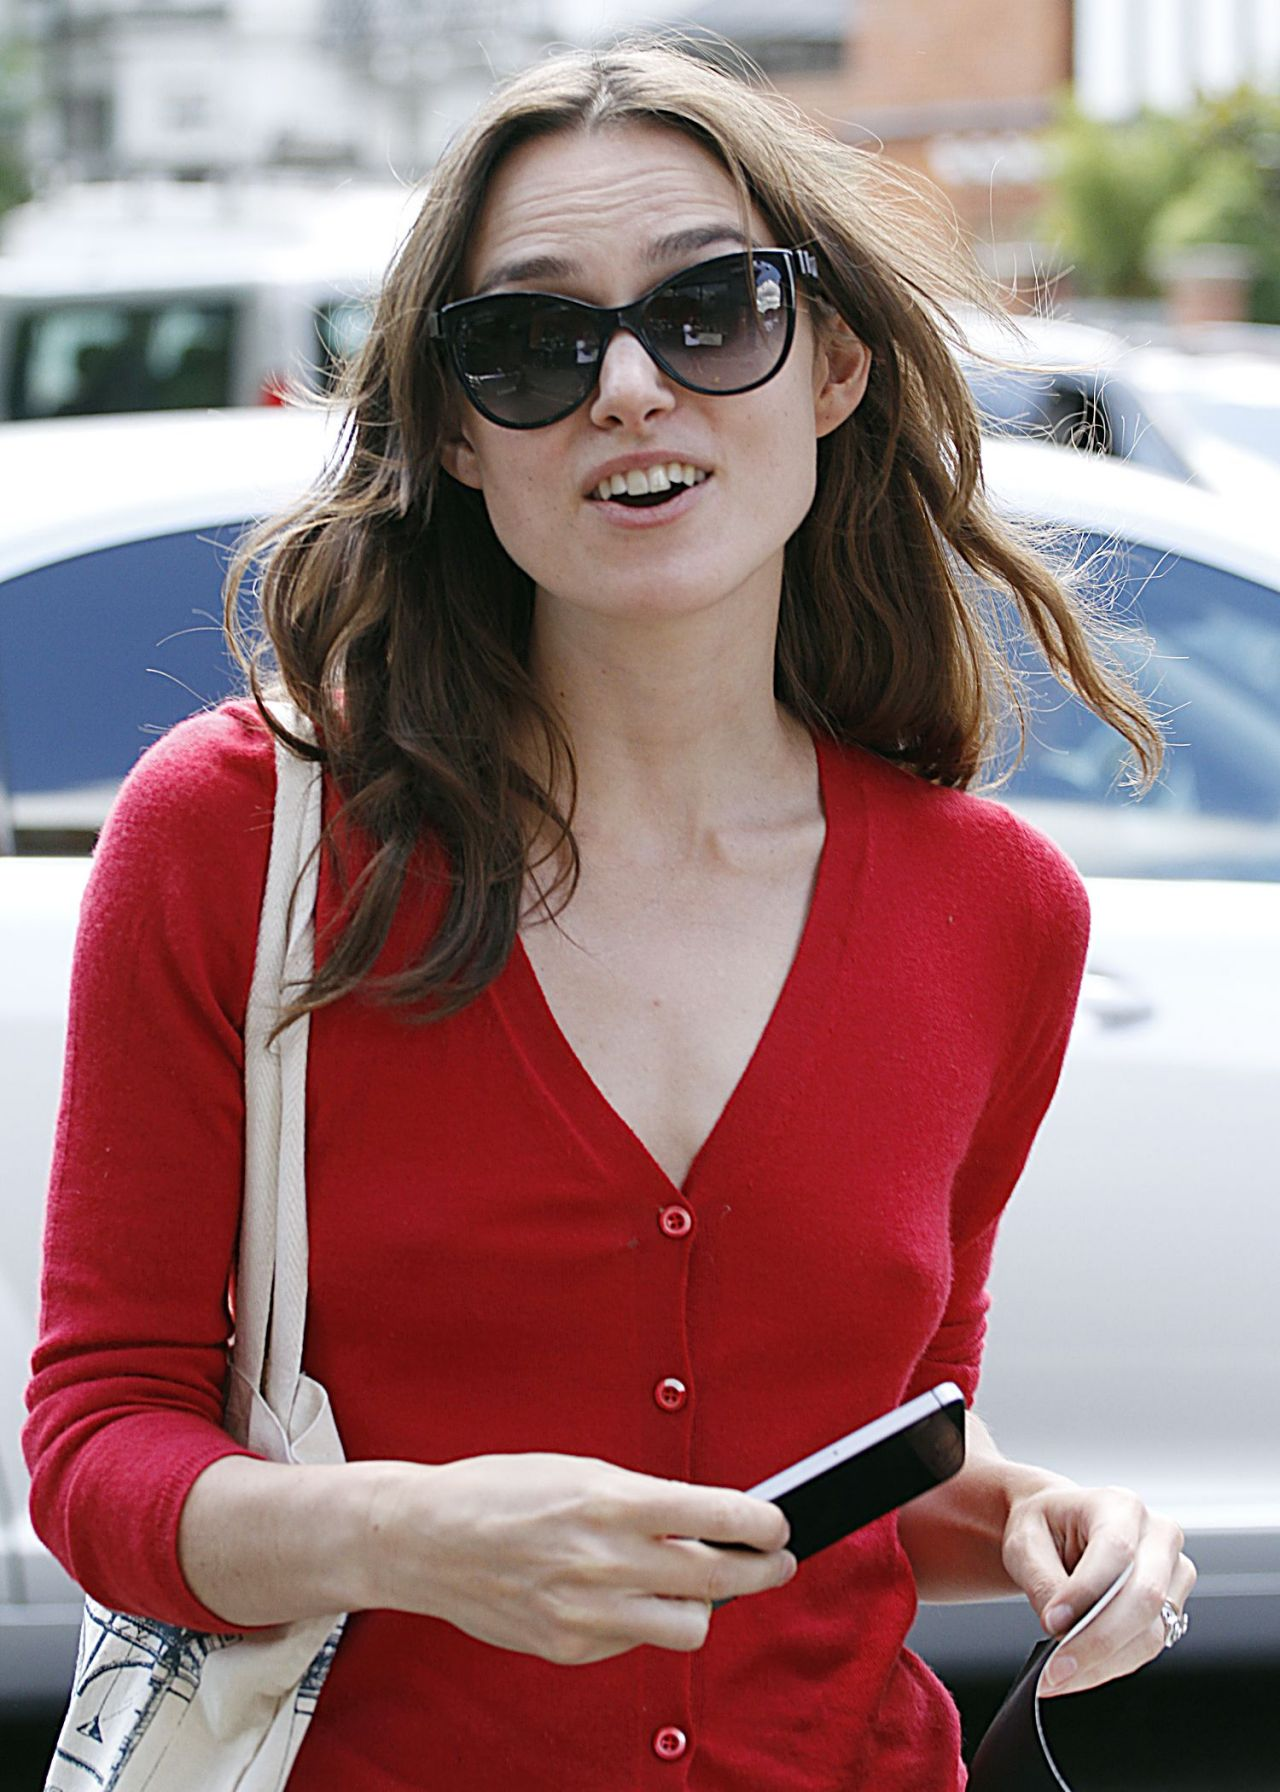 Keira Knightley Casual Style - Out In London - June 2014-4971